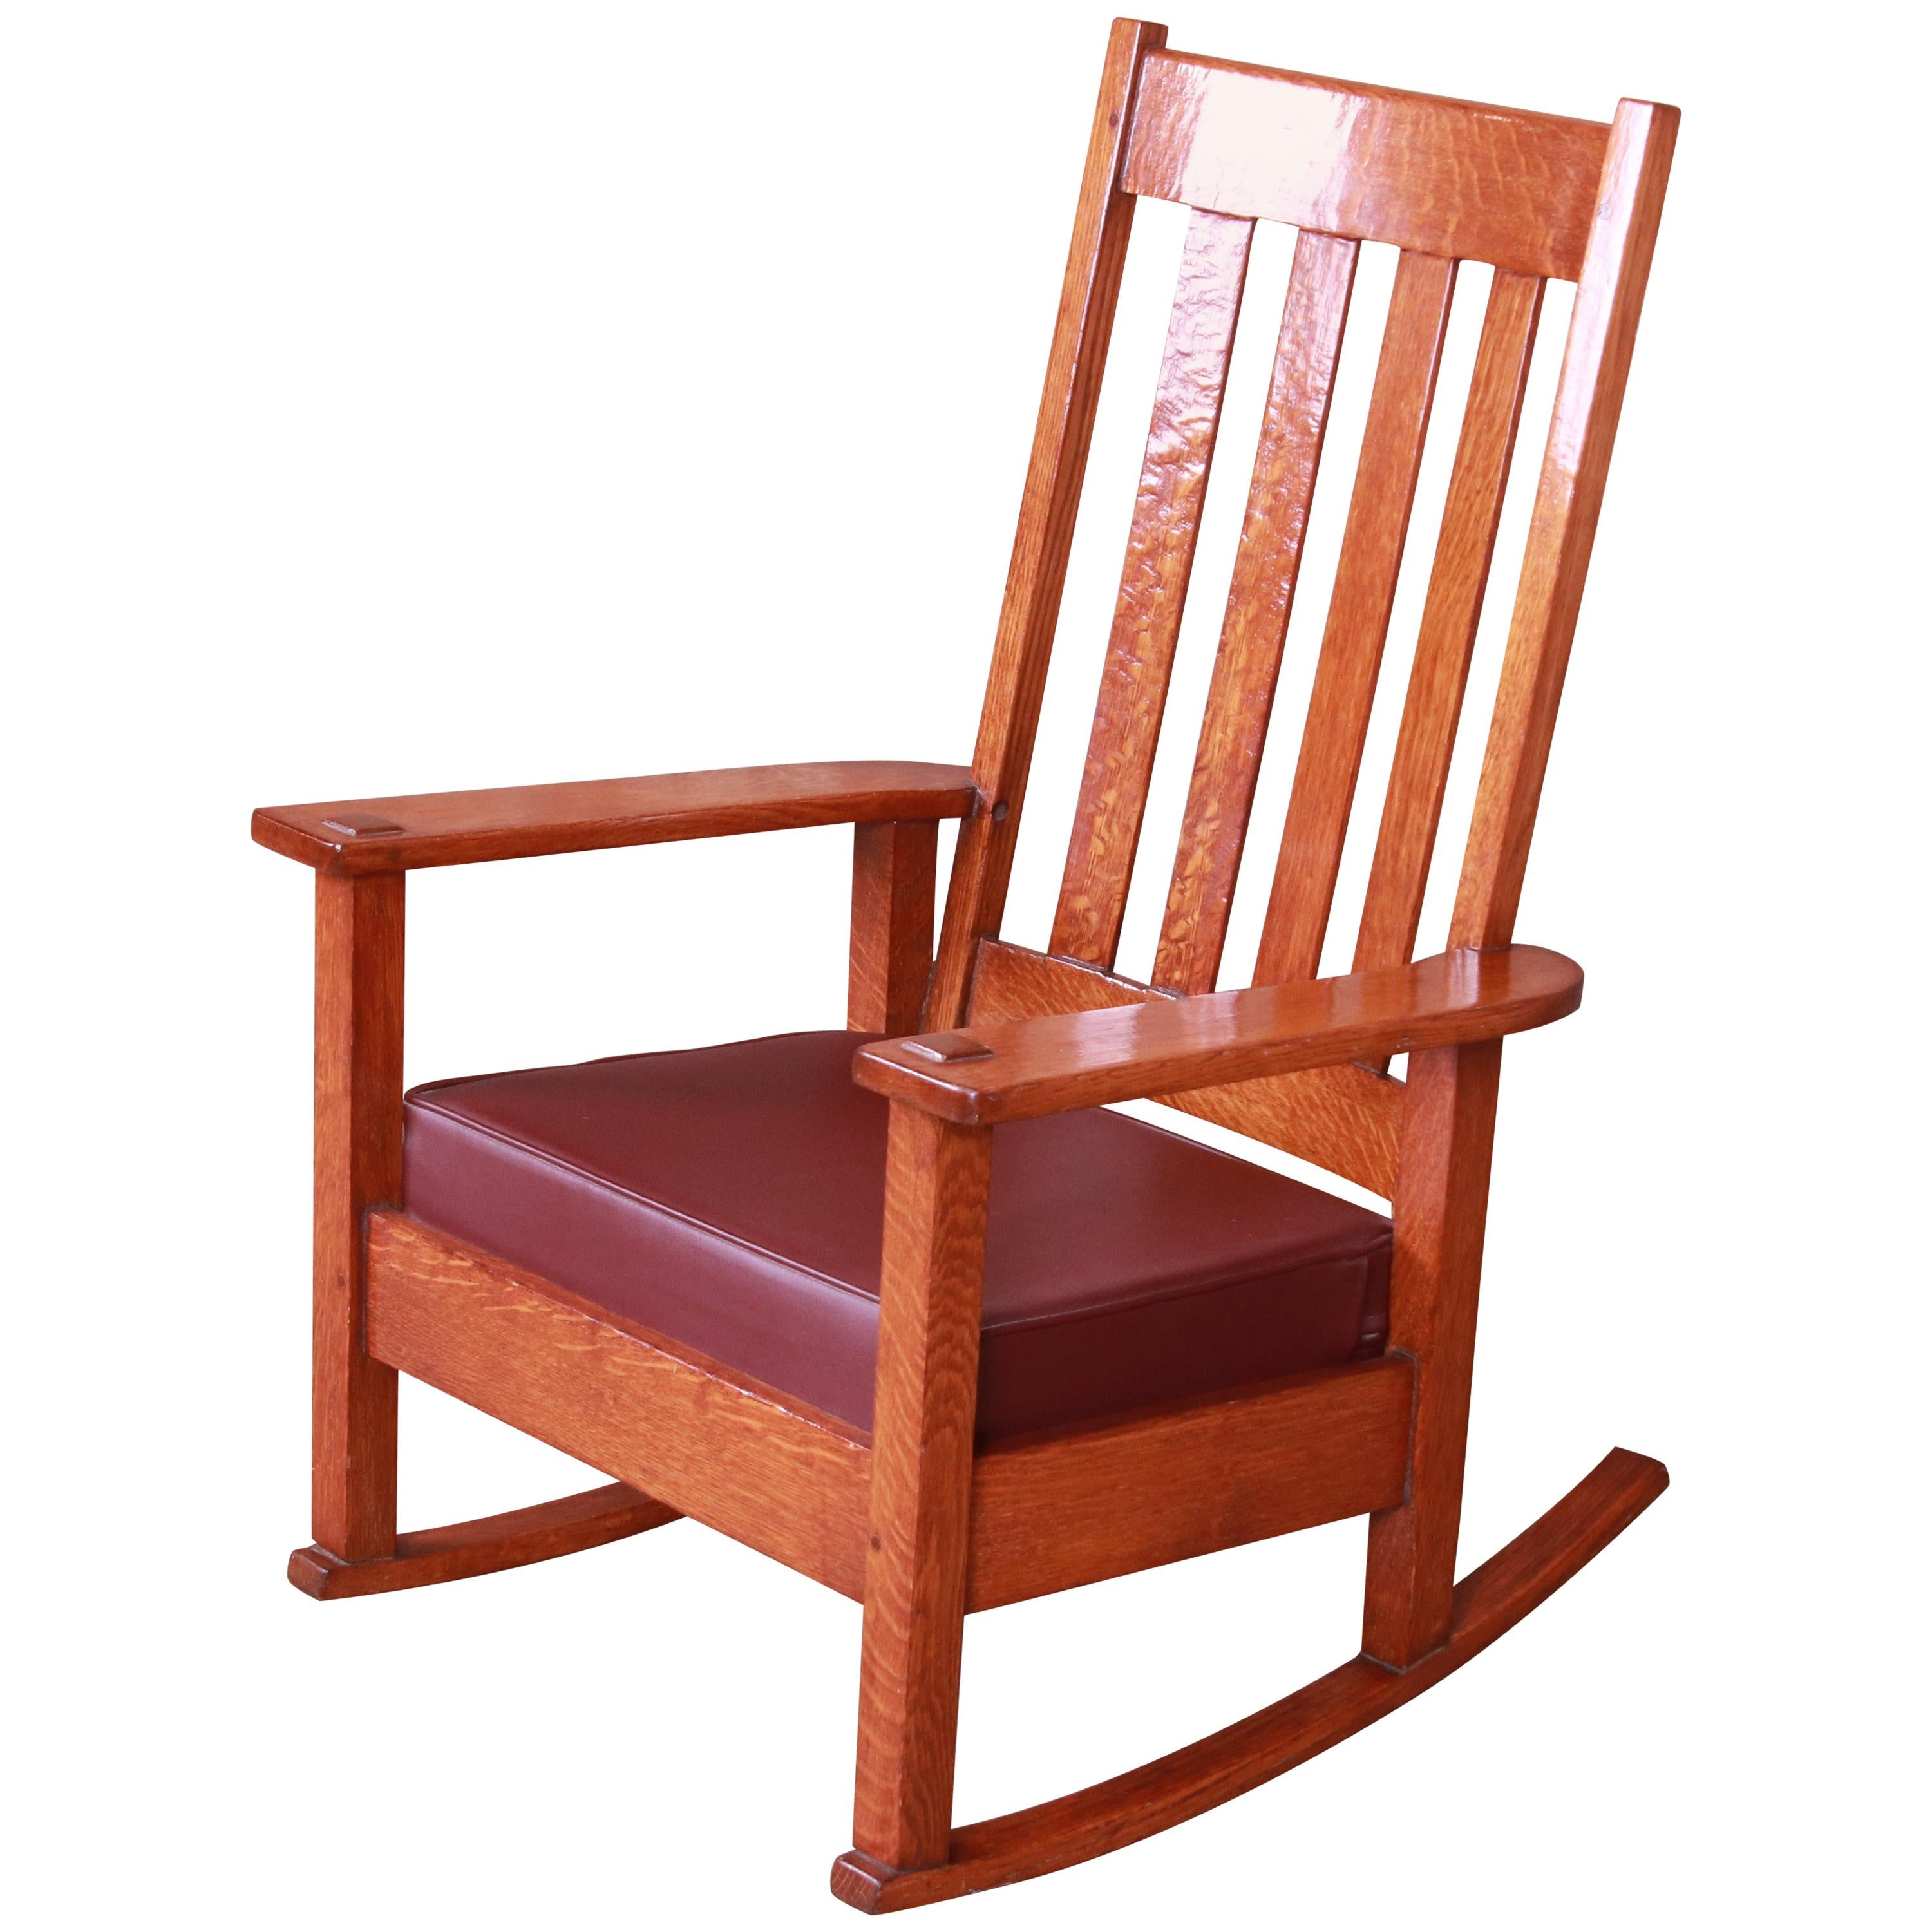 Stickley Brothers Arts & Crafts Oak and Leather Rocking Chair, circa 1900